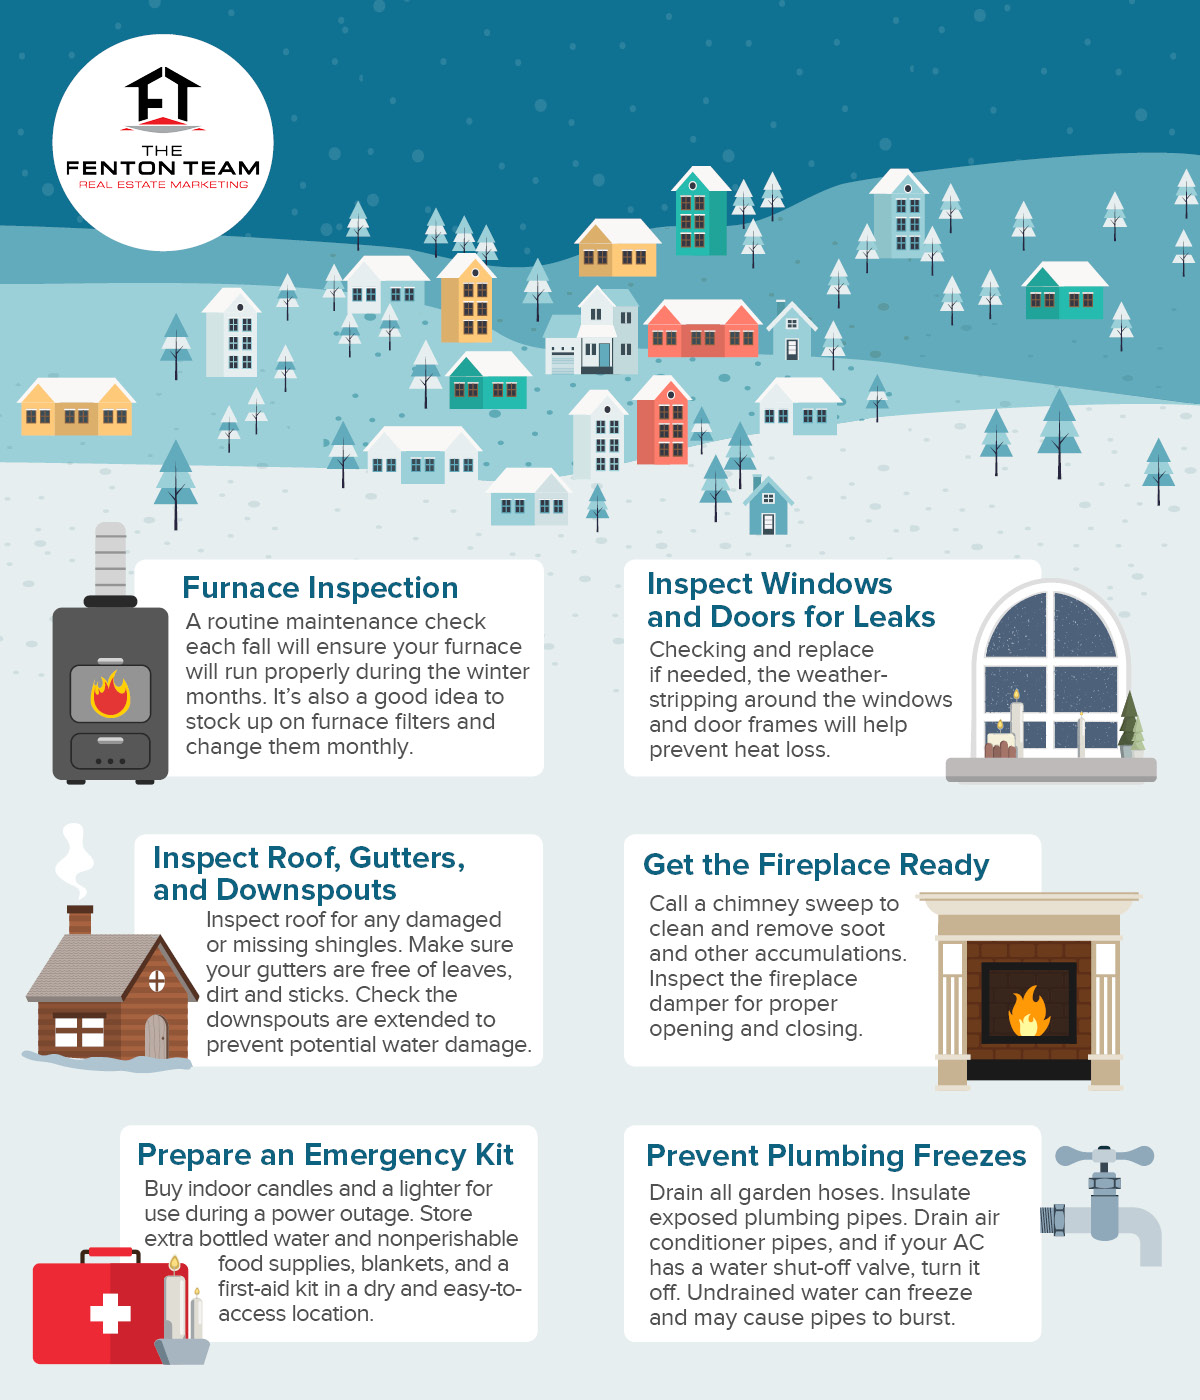 Tips to Winterise Your Home